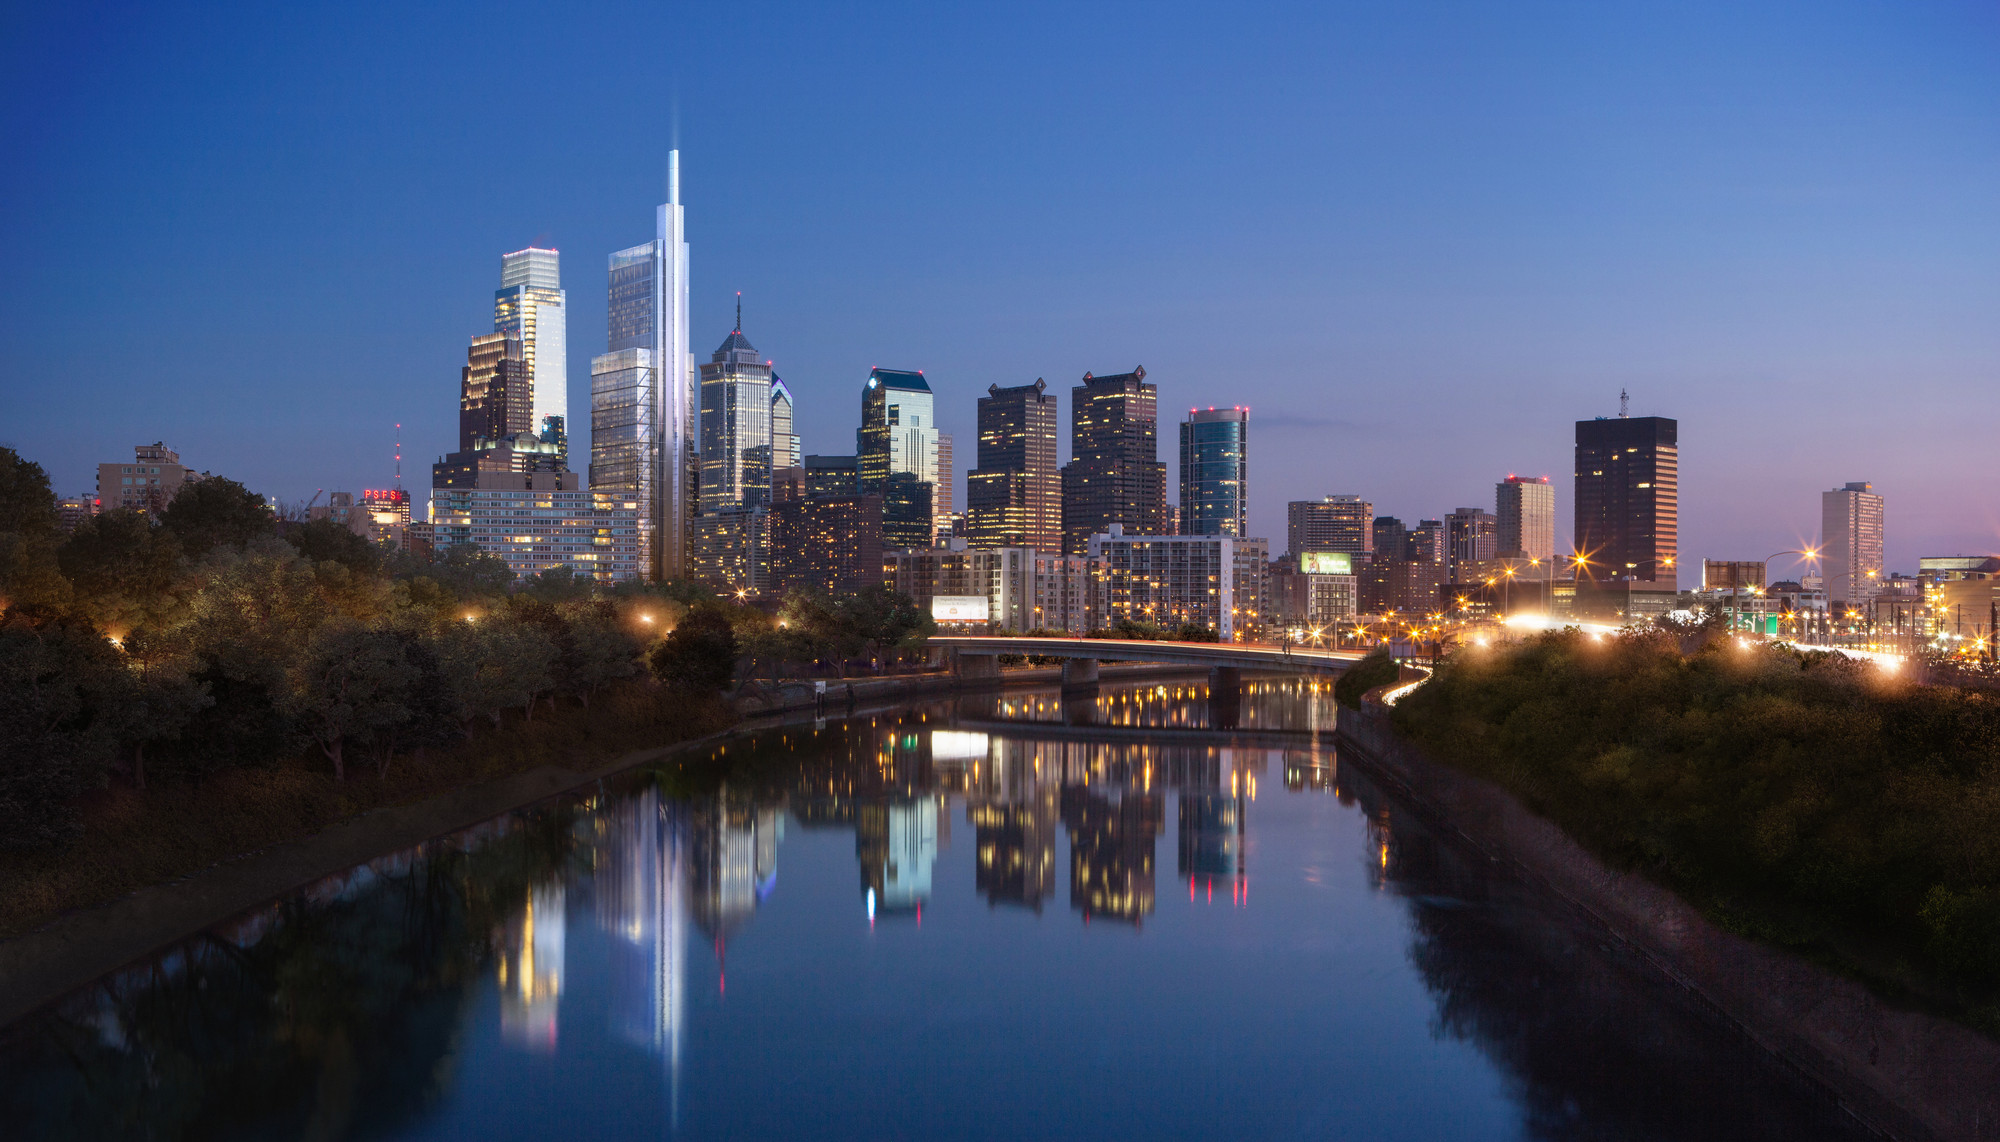 Foster + Partners Unveil 1,121-Foot Comcast Tower for Philadelphia, © dbox, Foster + Partners